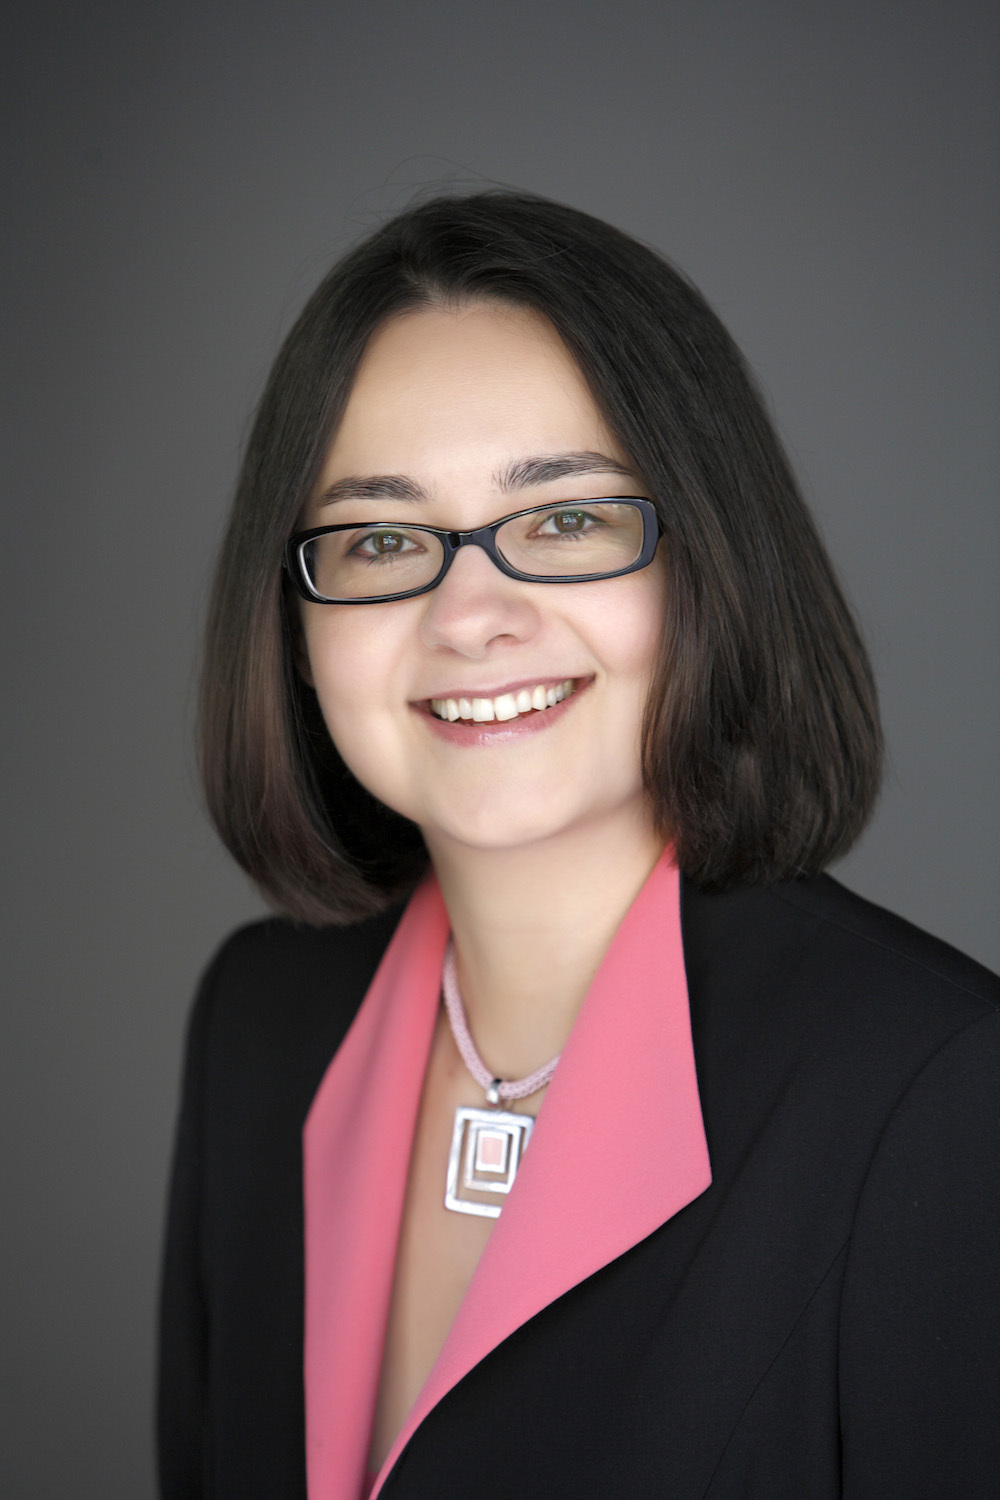 Digital innovator Ekaterina Walter joins Househappy as Chief Marketing Officer. (Photo: Business Wire)